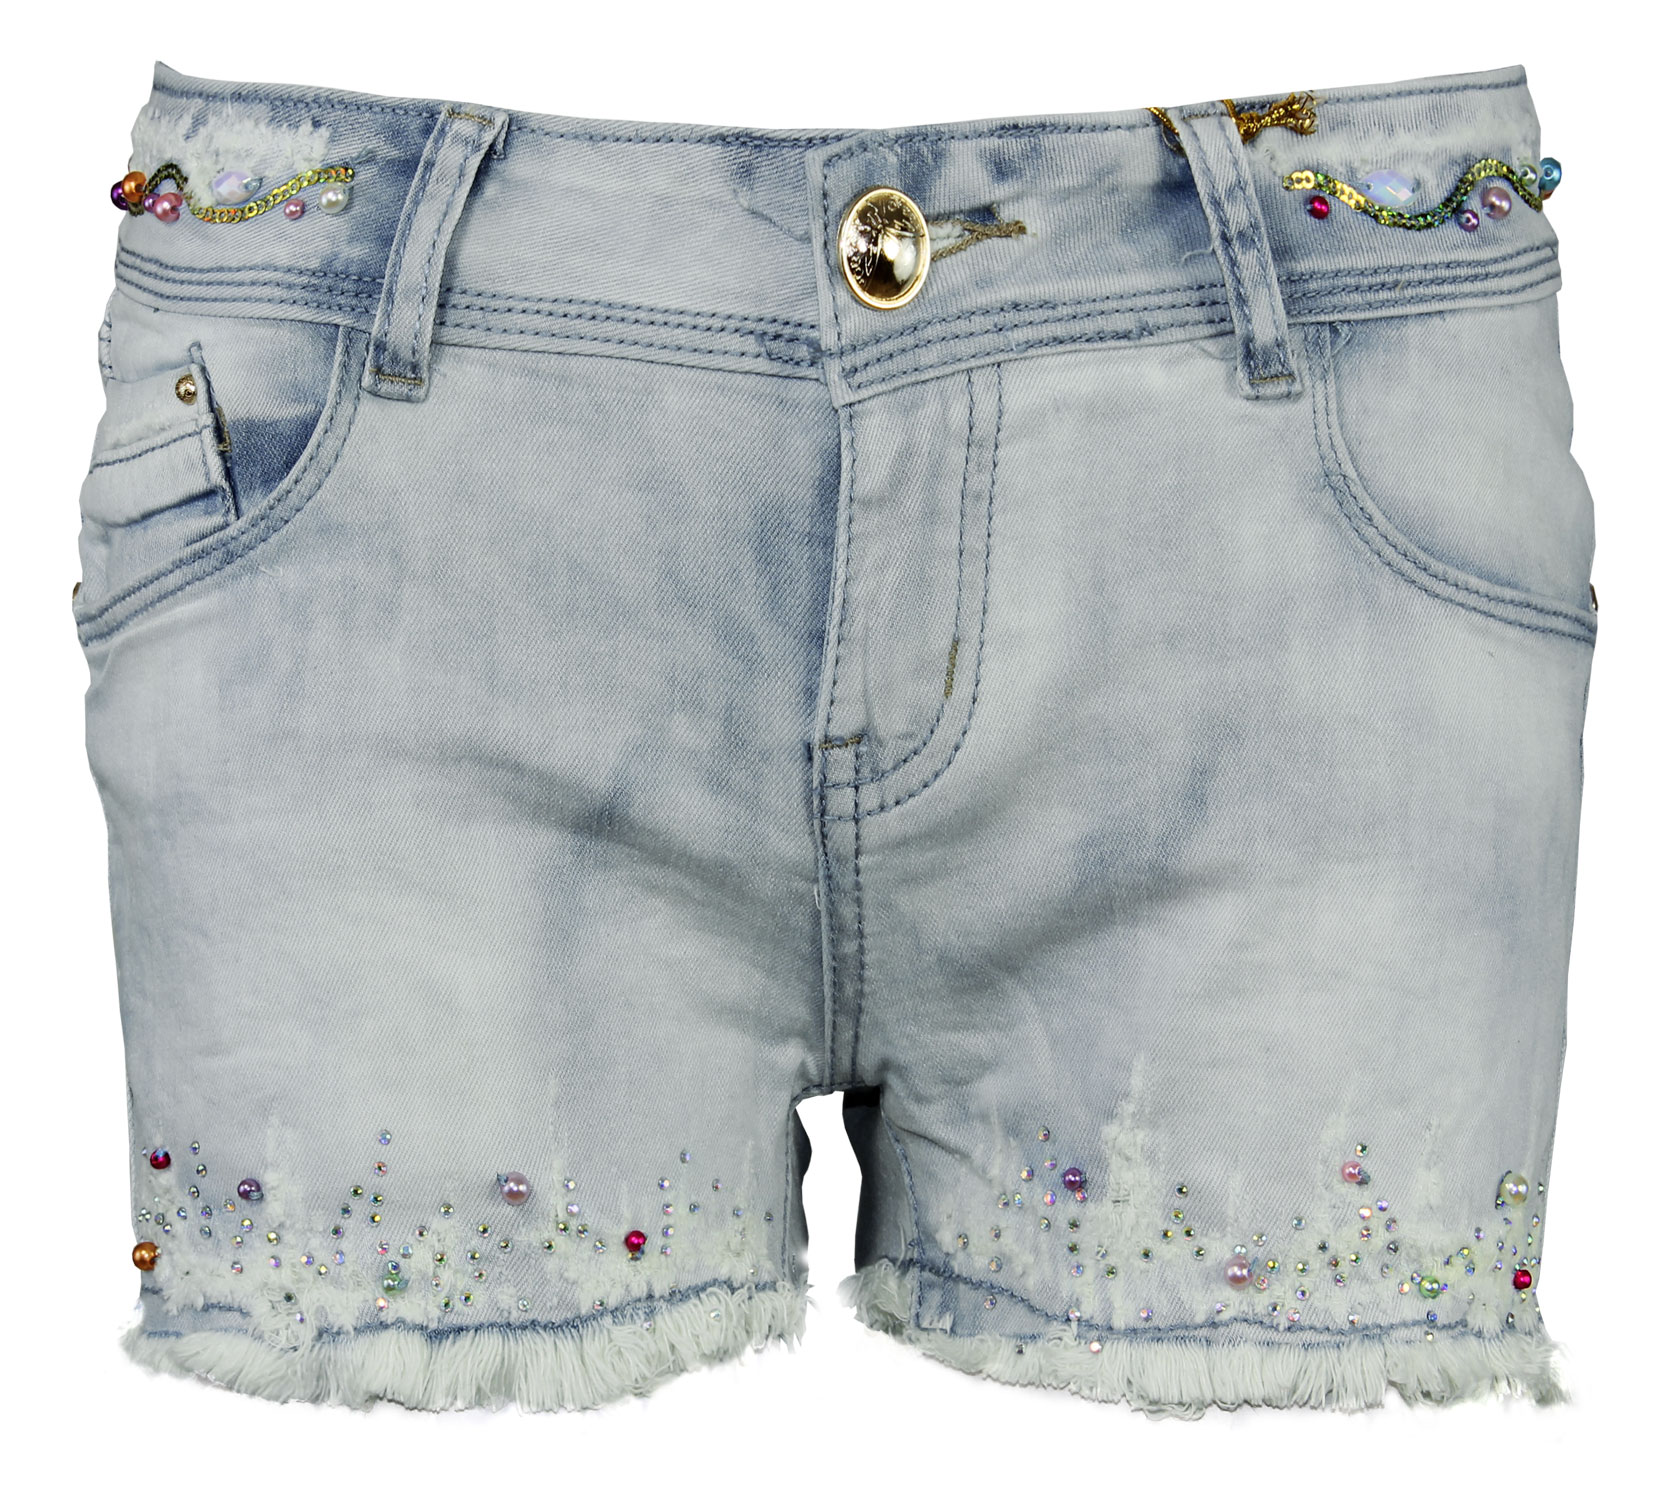 LADIES FRAYED DISTRESSED DIAMANTE DENIM HOTPANTS WOMENS SHORTS JEANS | eBay